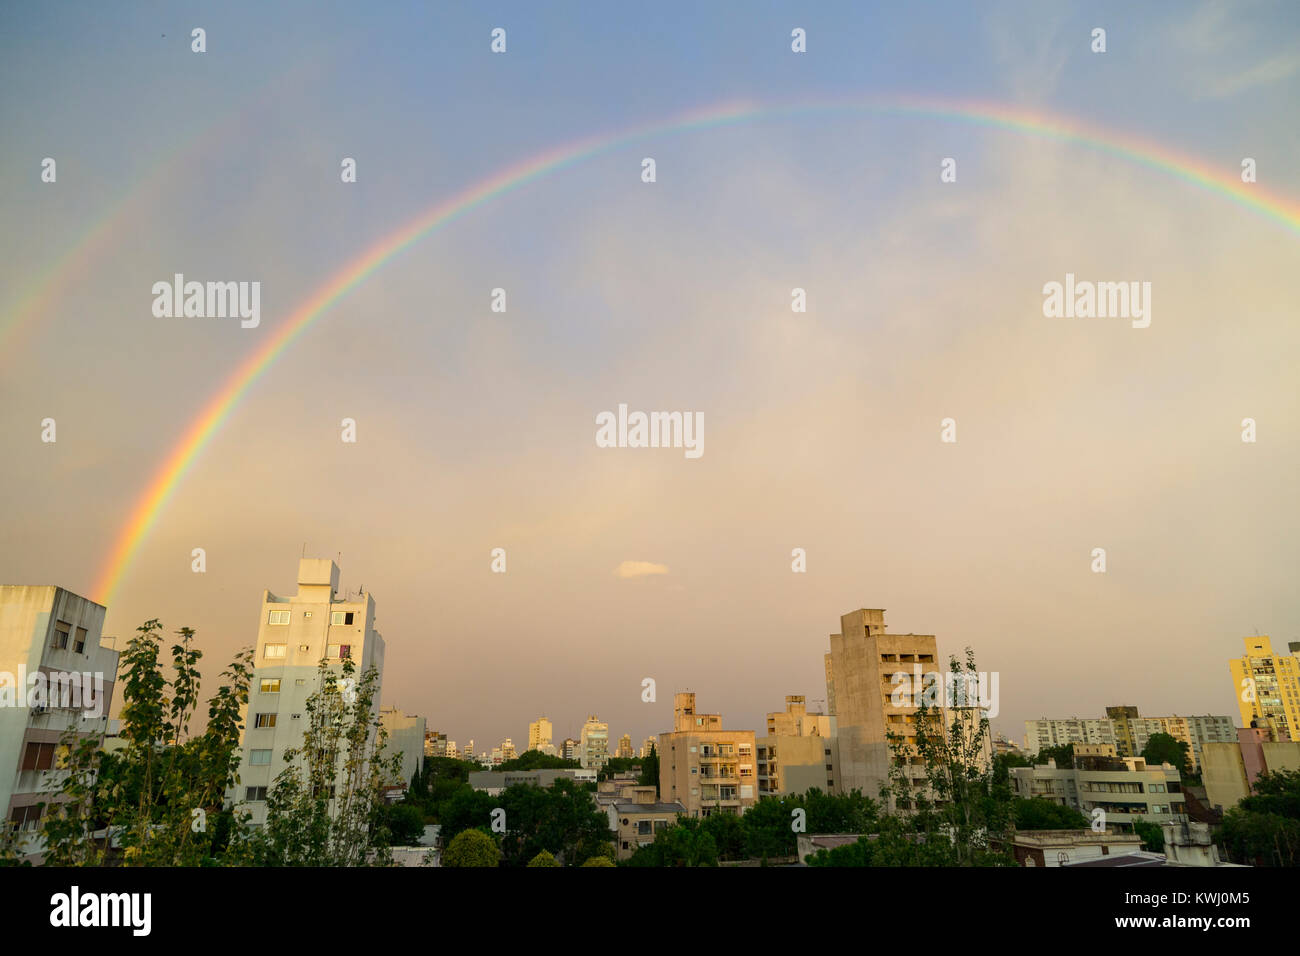 Rainbows over the city of La Plata, Argentina - Stock Image